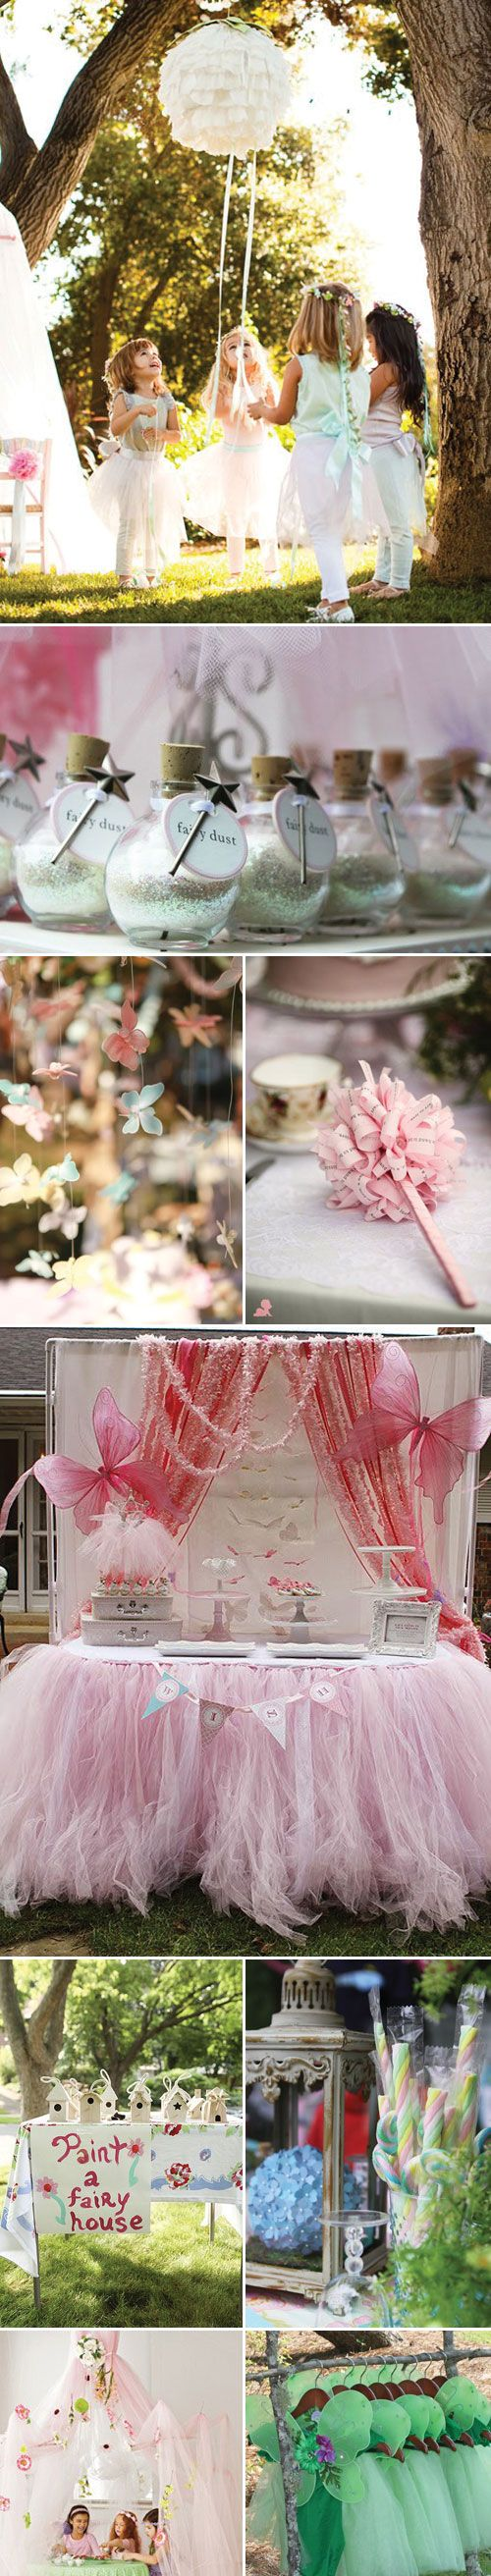 Fairy Birthday Party Inspiration and Ideas